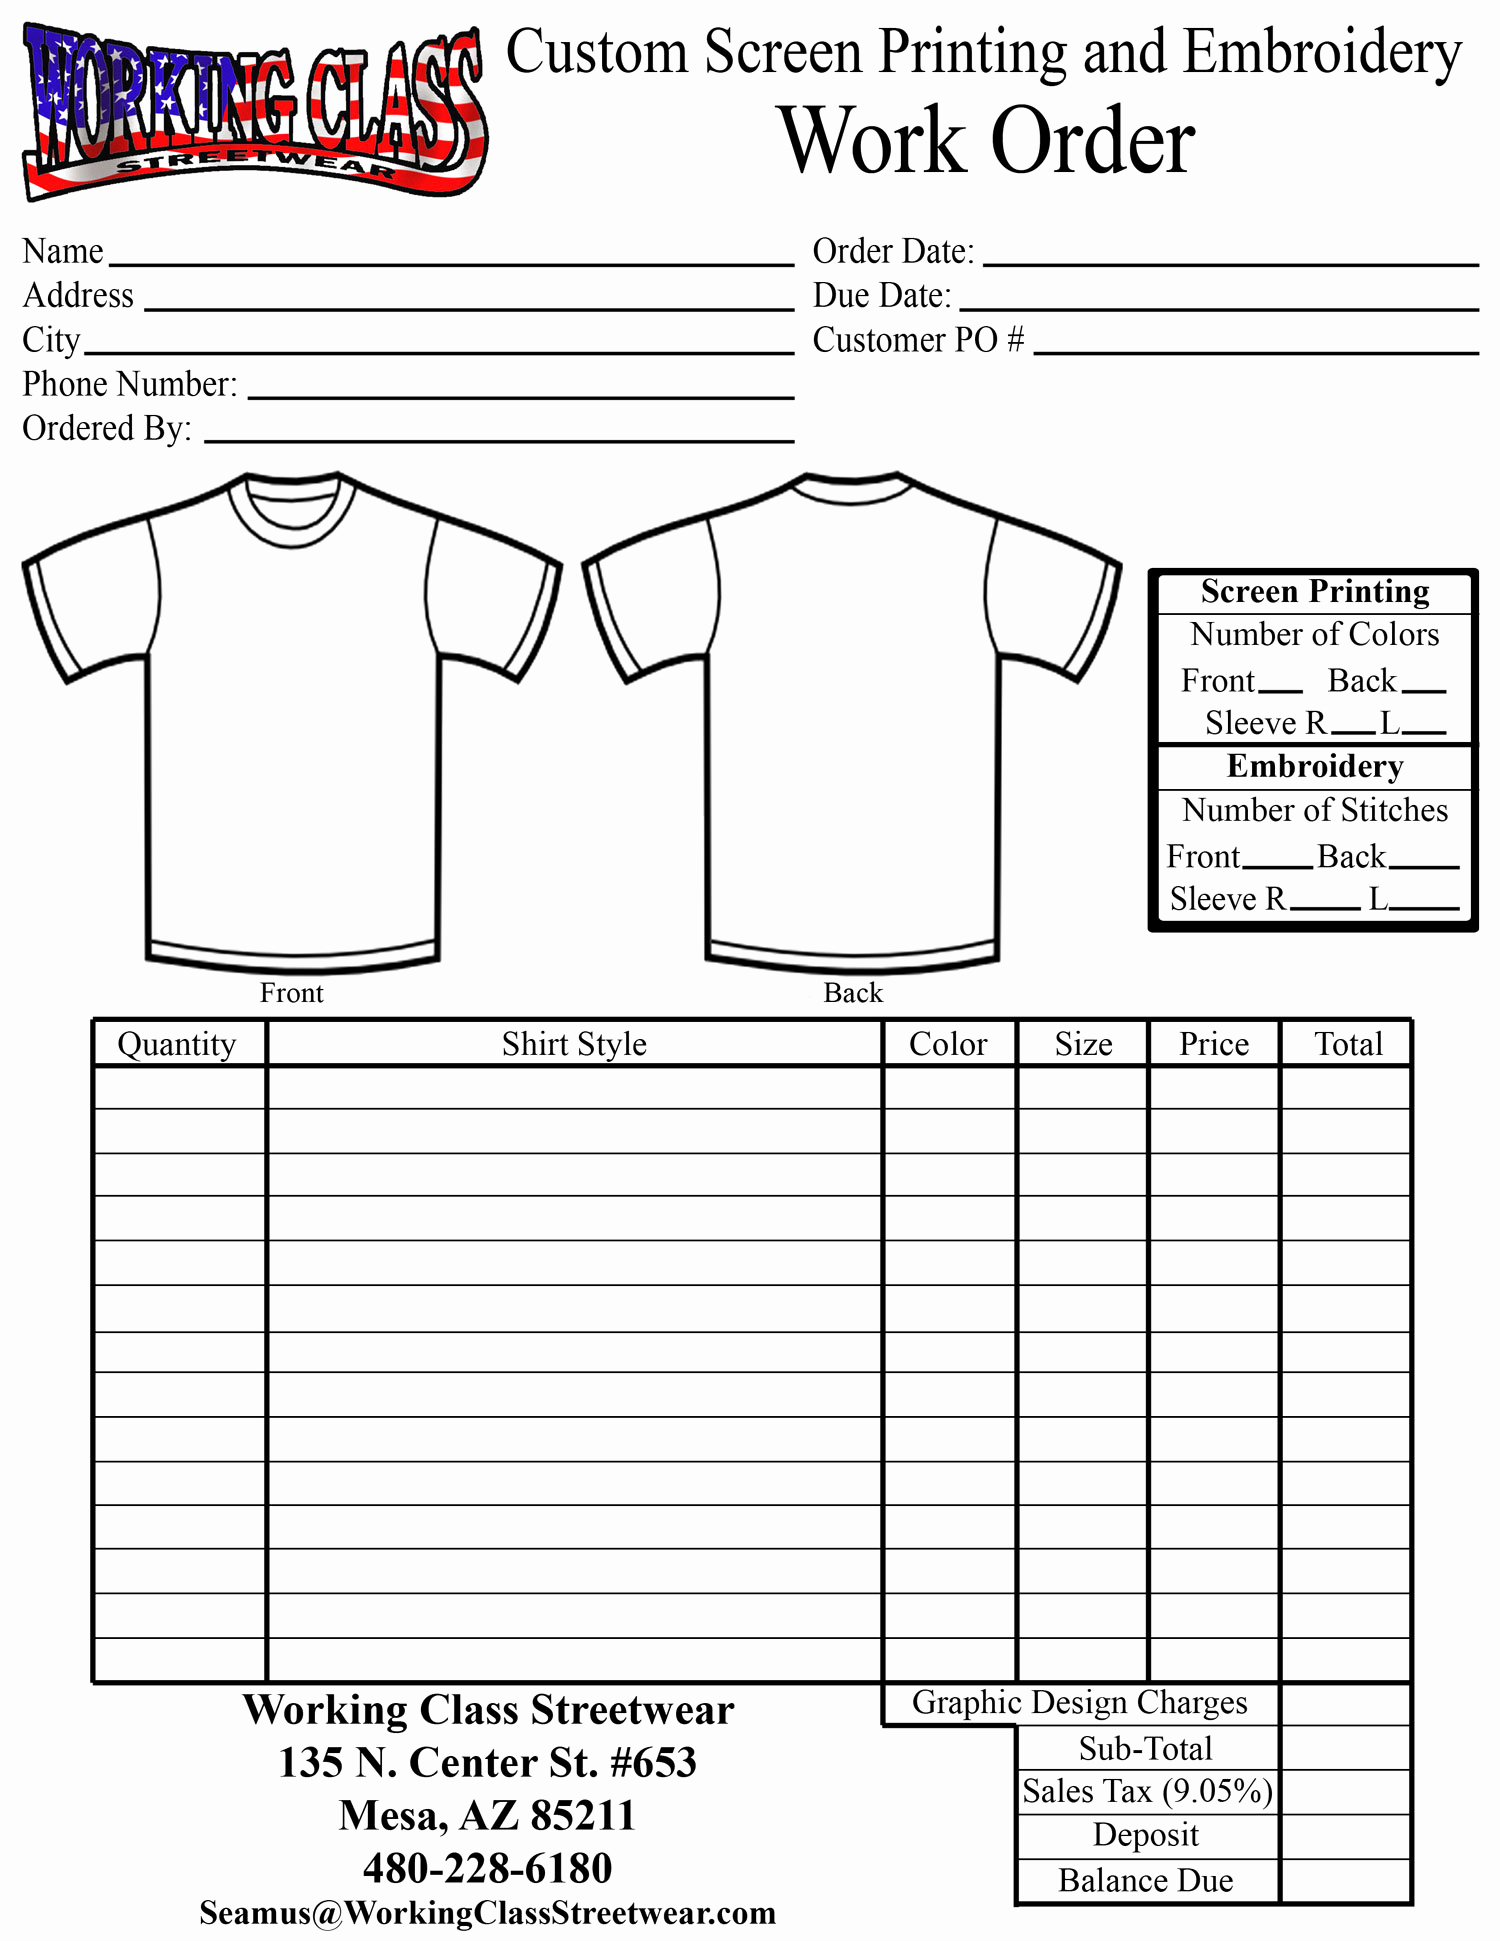 Shirt order form Template Best Of Working Class Streetwear Screen Printing